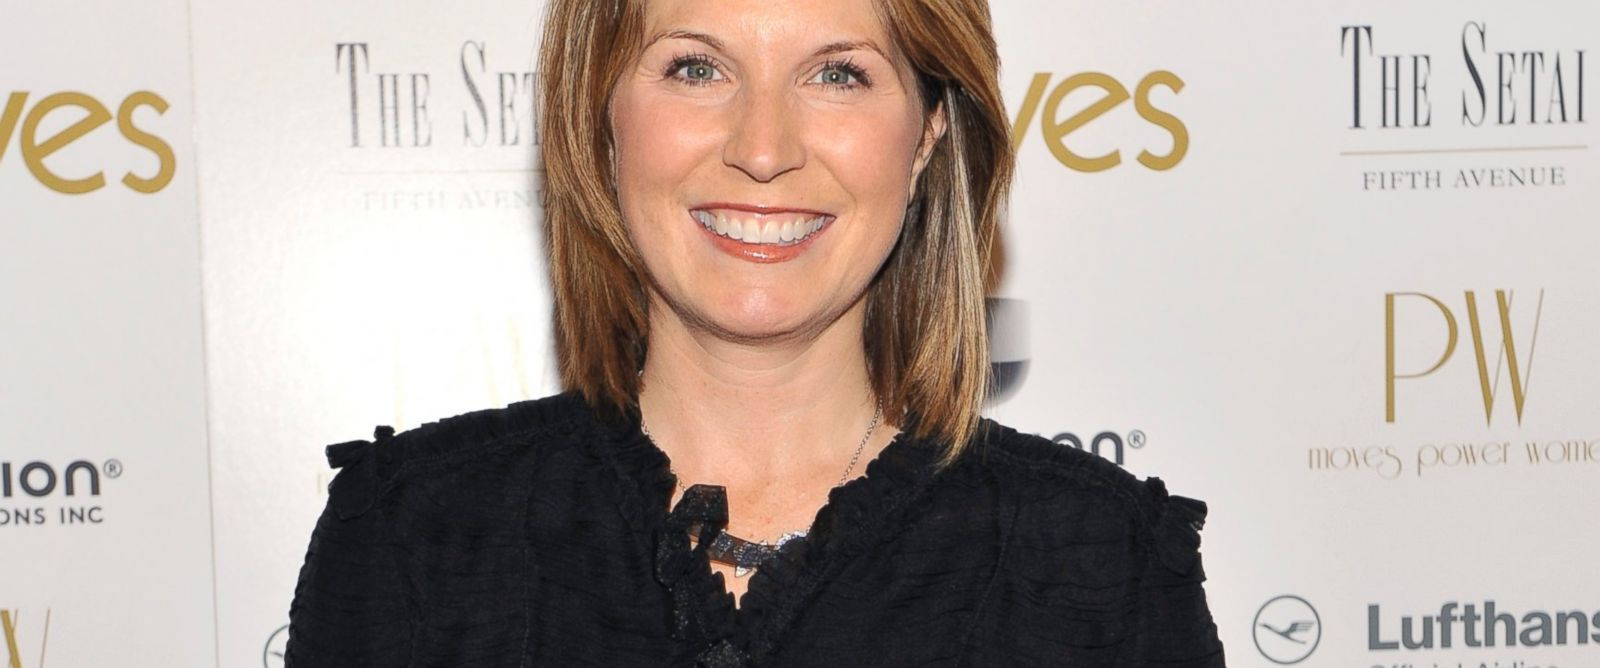 PHOTO: Nicolle Wallace attends The Moves Power Women Awards Gala 2012 at The Setai Fifth Avenue, in New York, in this Nov.15, 2012 file photo.